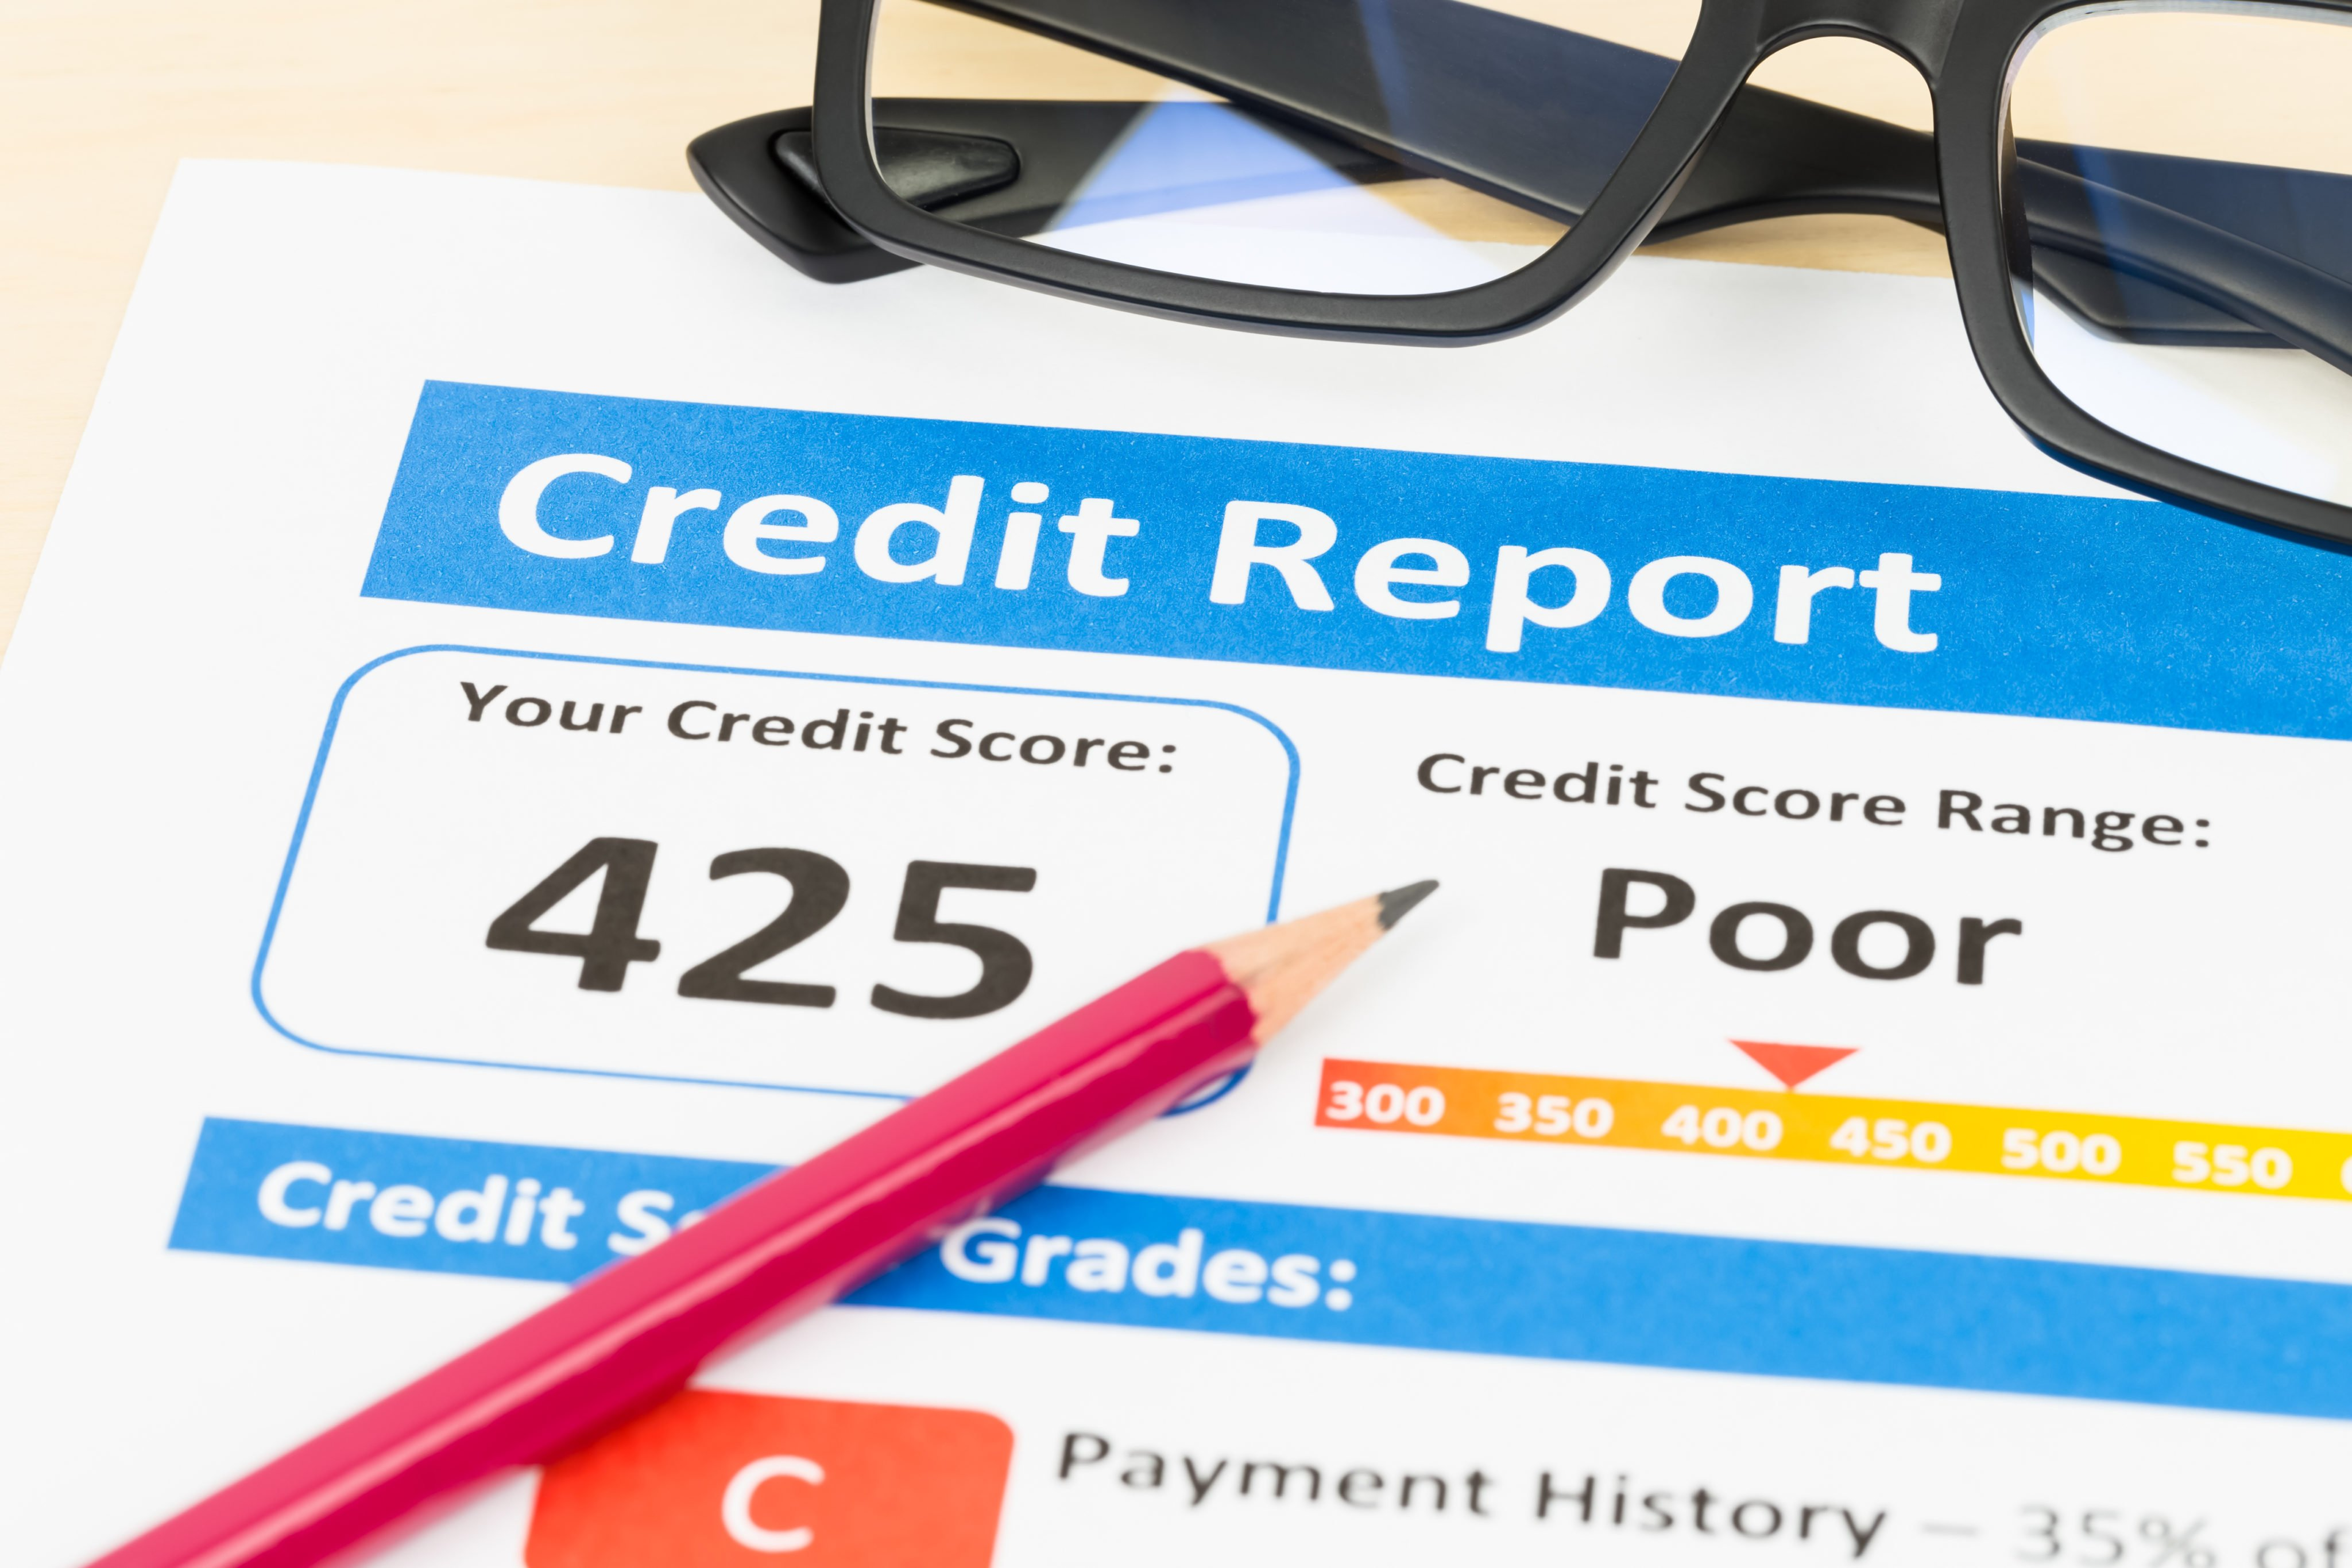 cd5ed0ba51 11 Surprising Things That Damage Your Credit Score